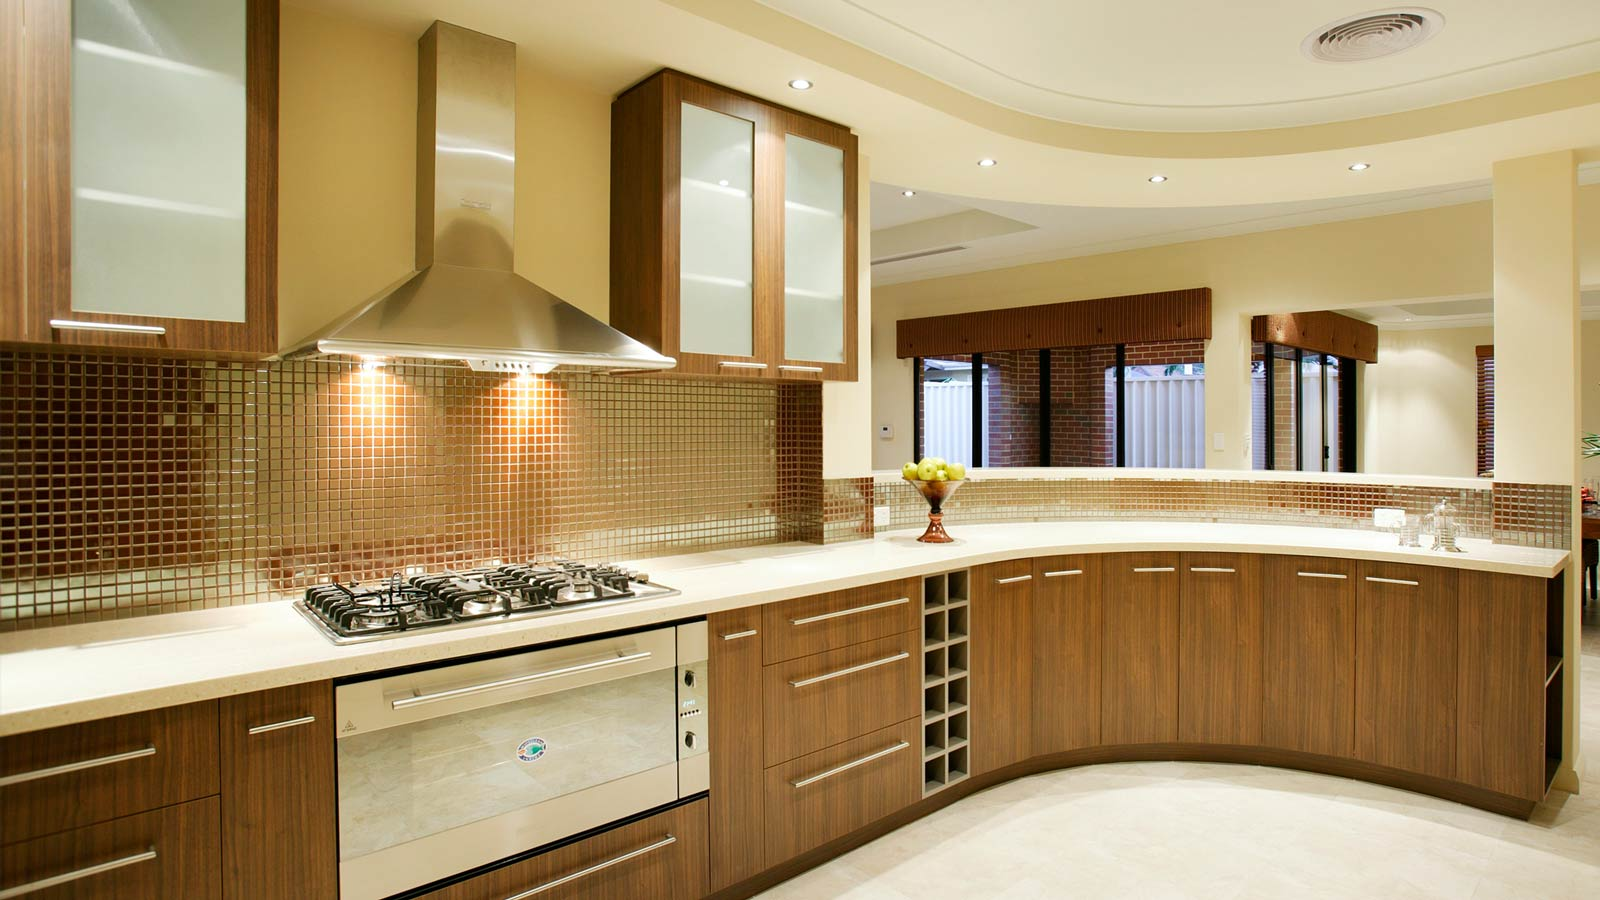 Latest Modular Kitchen Designs At Best Price Inoday In